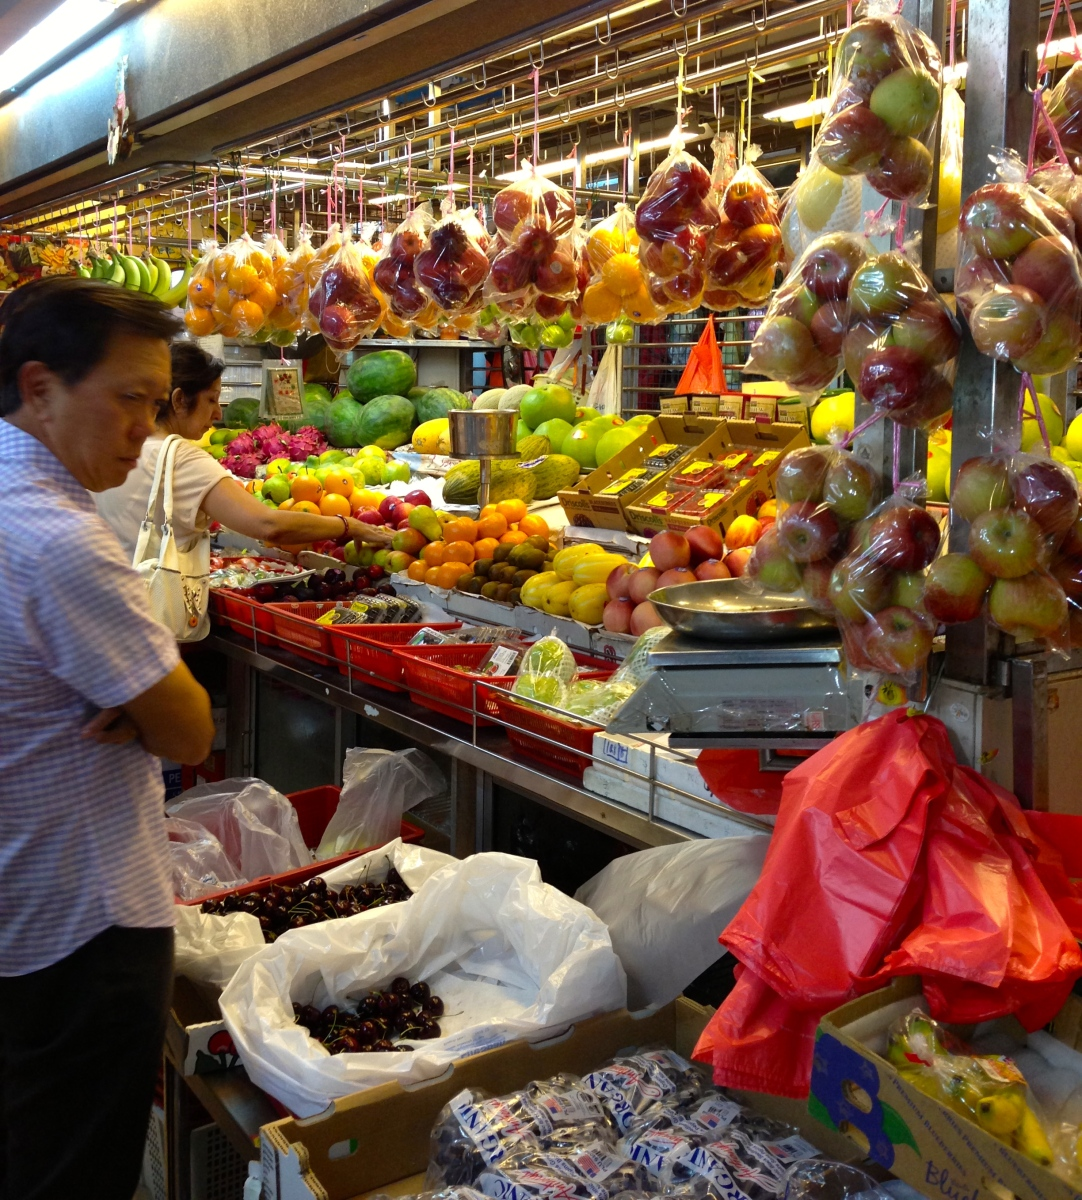 Wet market fruit stand in Singapore